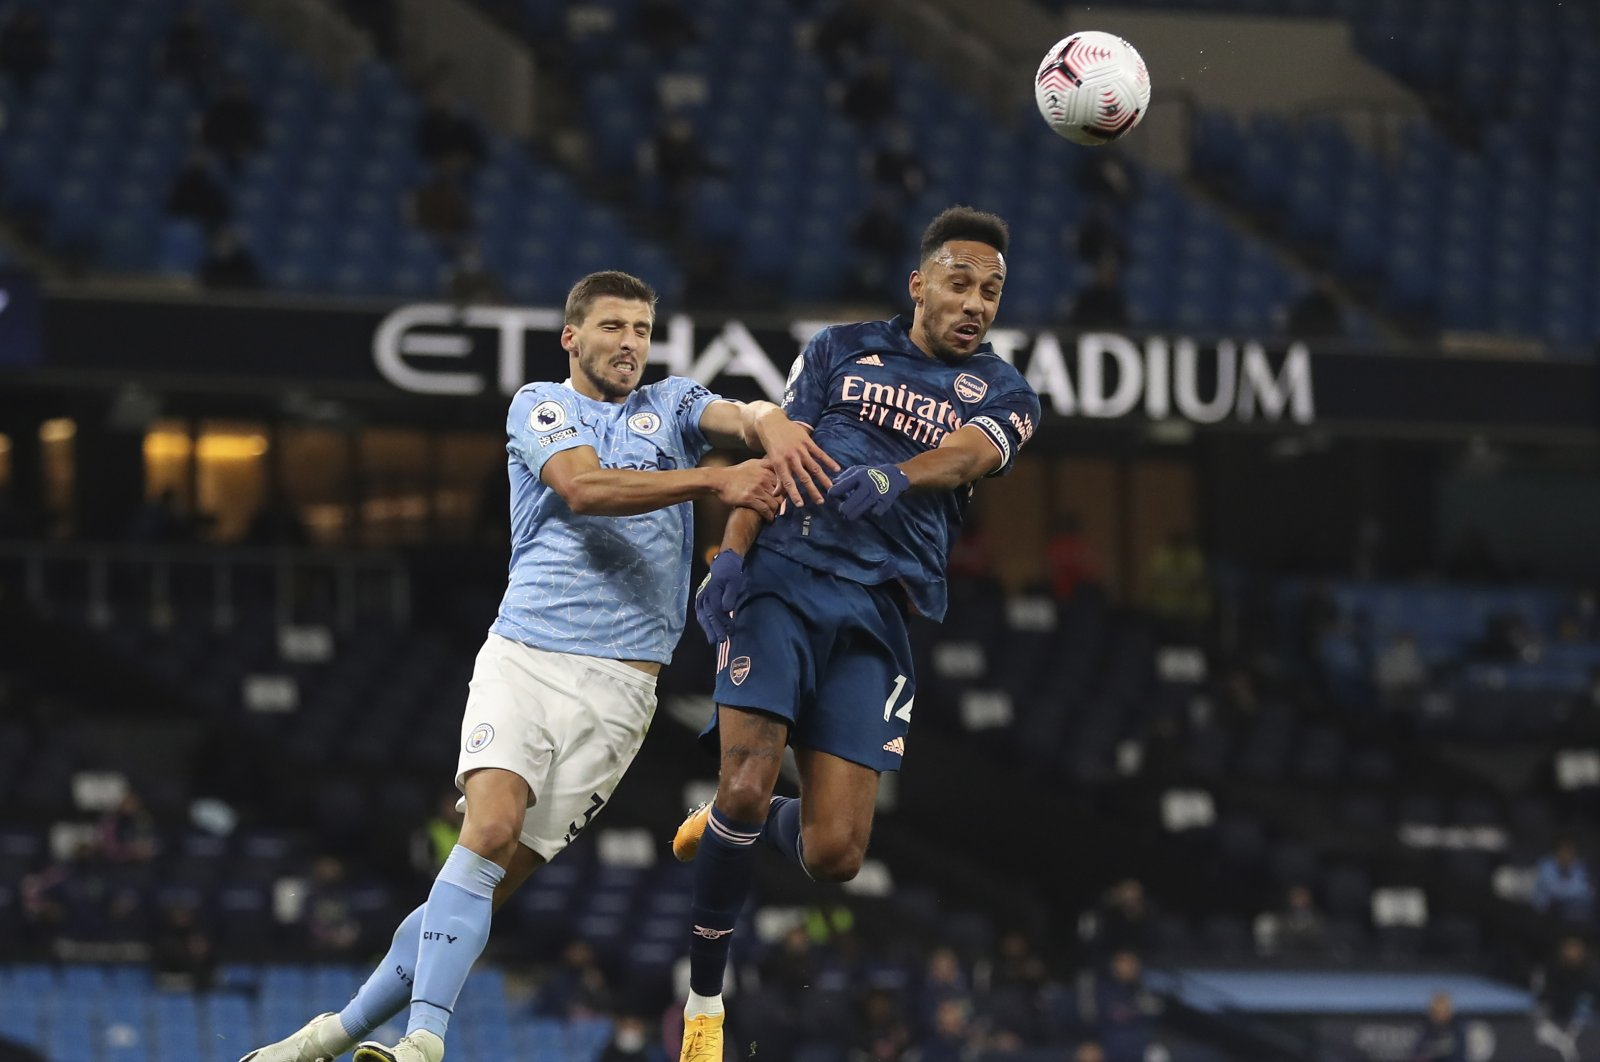 Manchester City's Ruben Dias (L) jumps for the ball with Arsenal's Pierre-Emerick Aubameyang during a Premier League match at the Etihad stadium in Manchester, England, Oct. 17, 2020. (AP Photo)